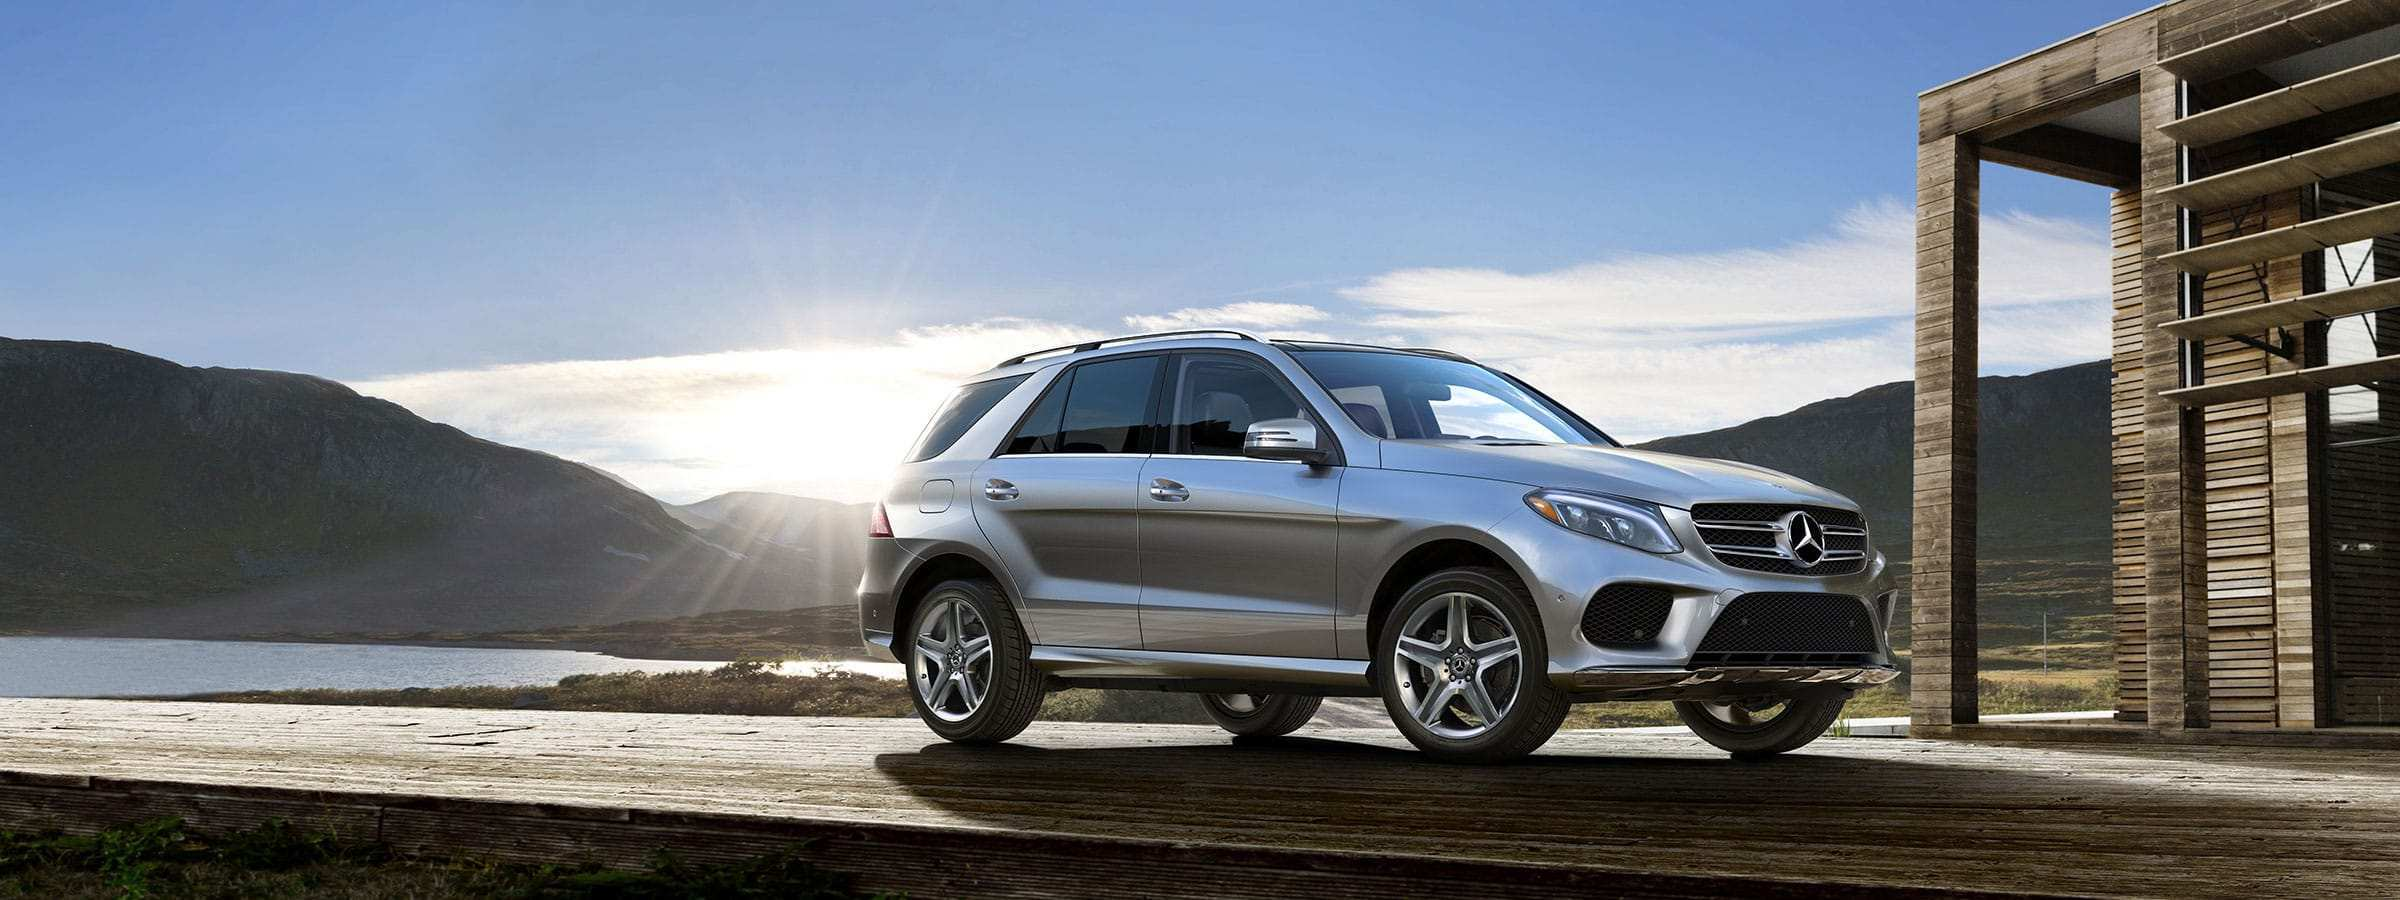 2020 Mercedes ML Class 400 Wallpaper